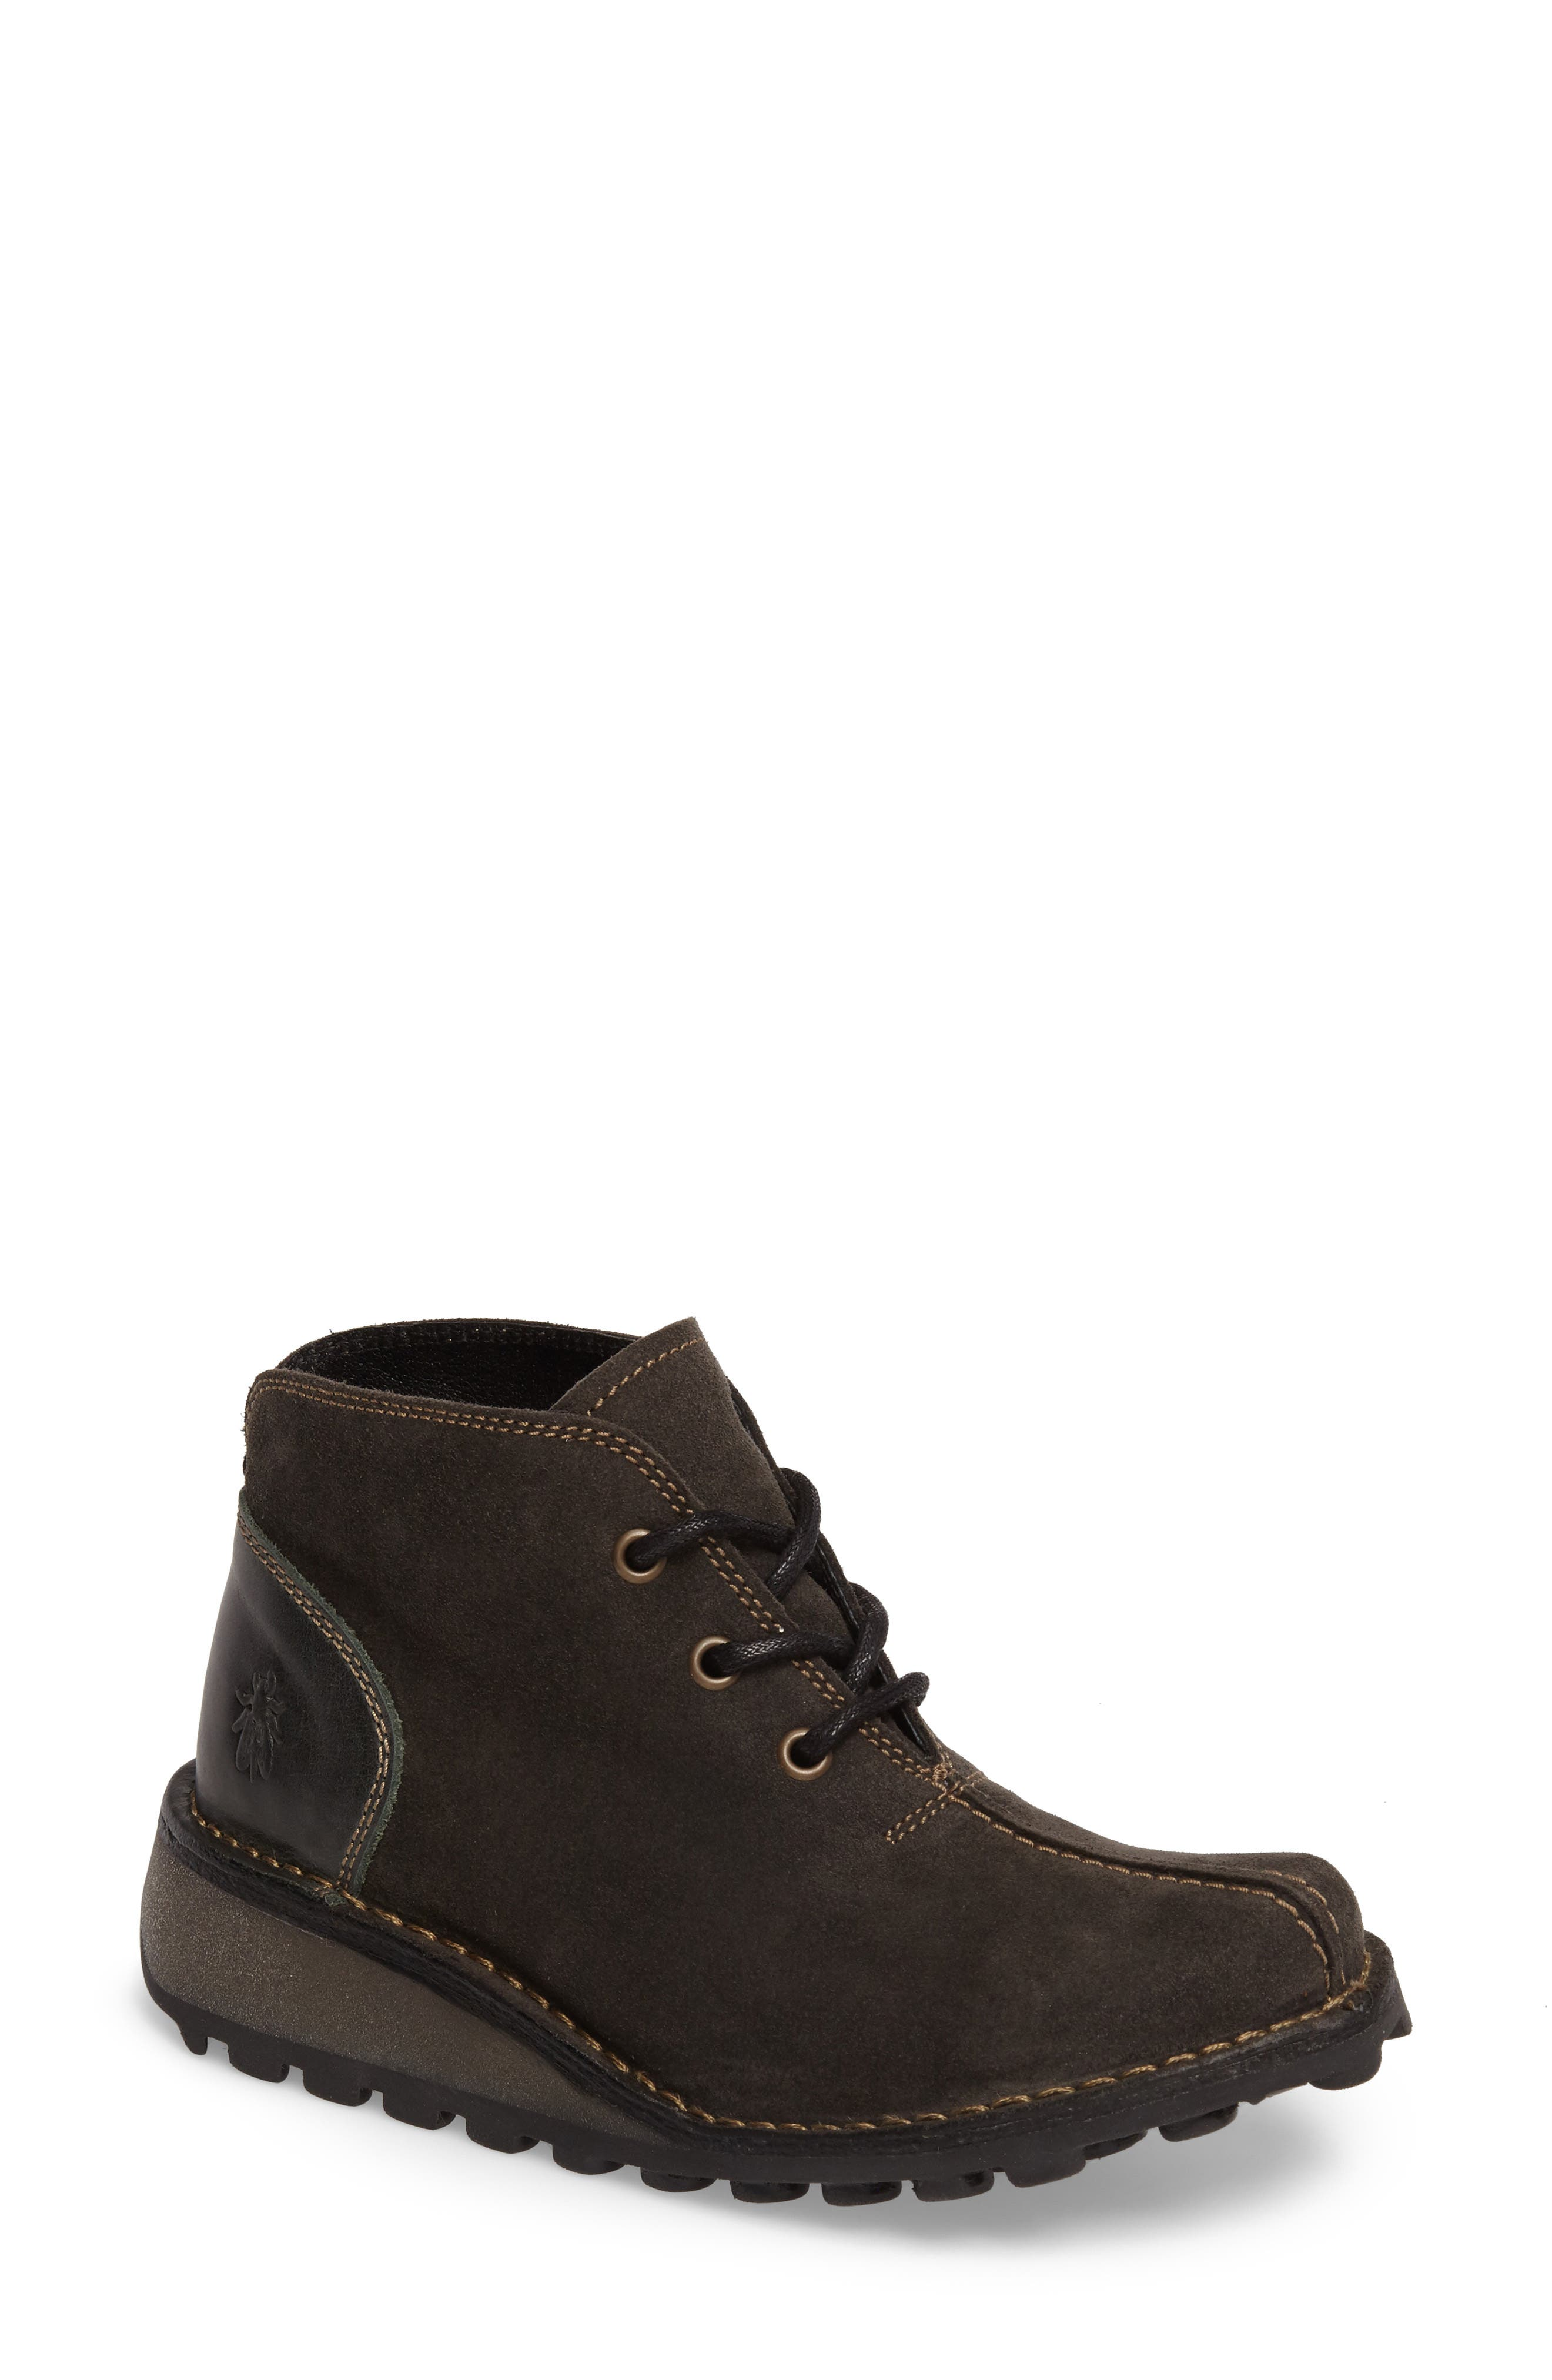 Alternate Image 1 Selected - Fly London Mili Wedge Bootie (Women)